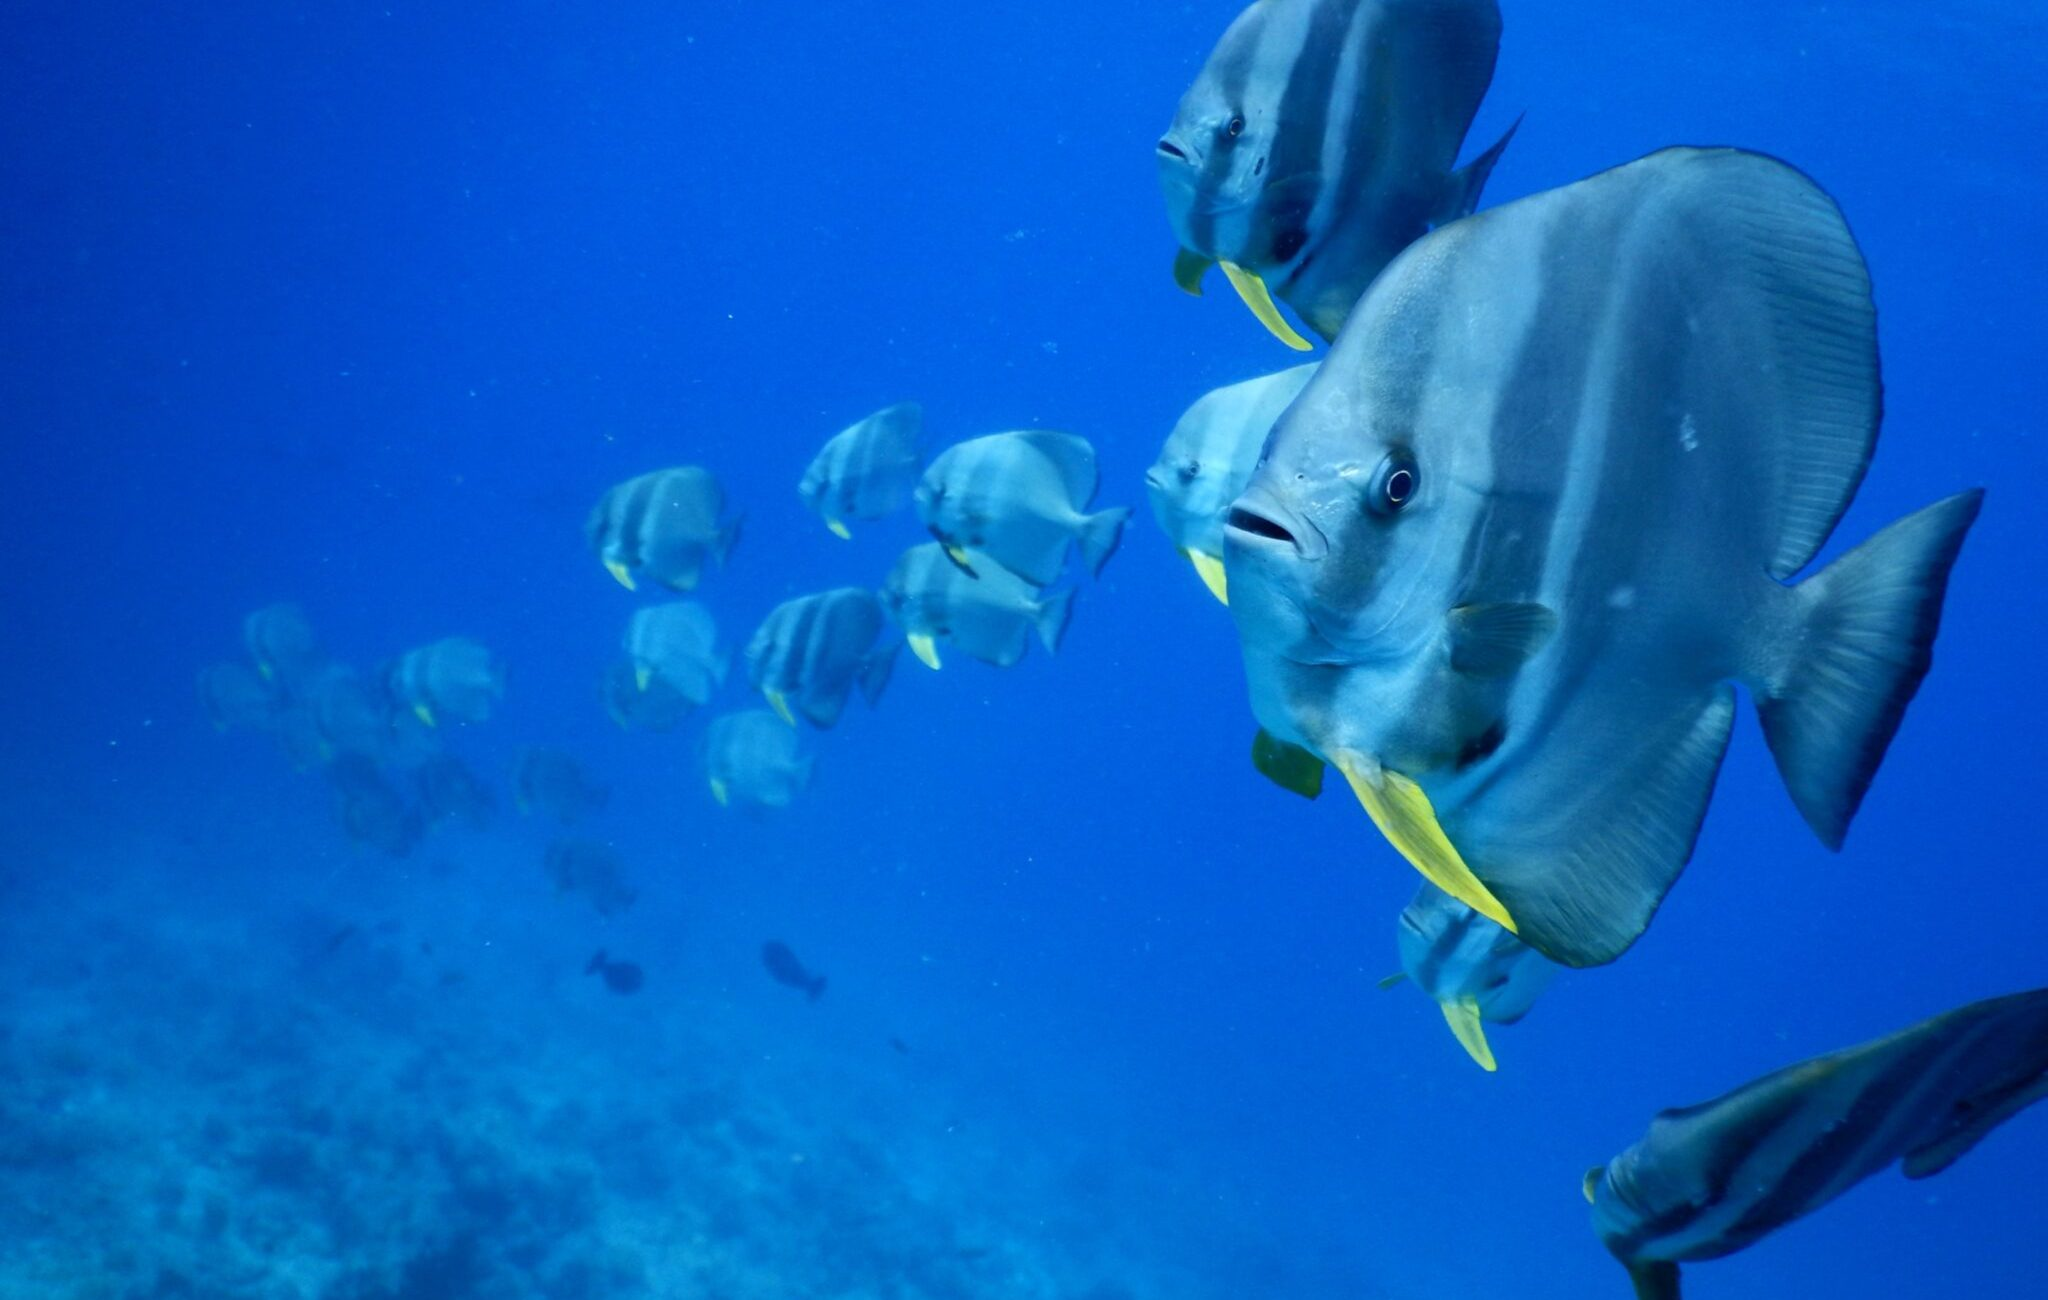 Bafish picture with Nikon Coolpix on the Maldives